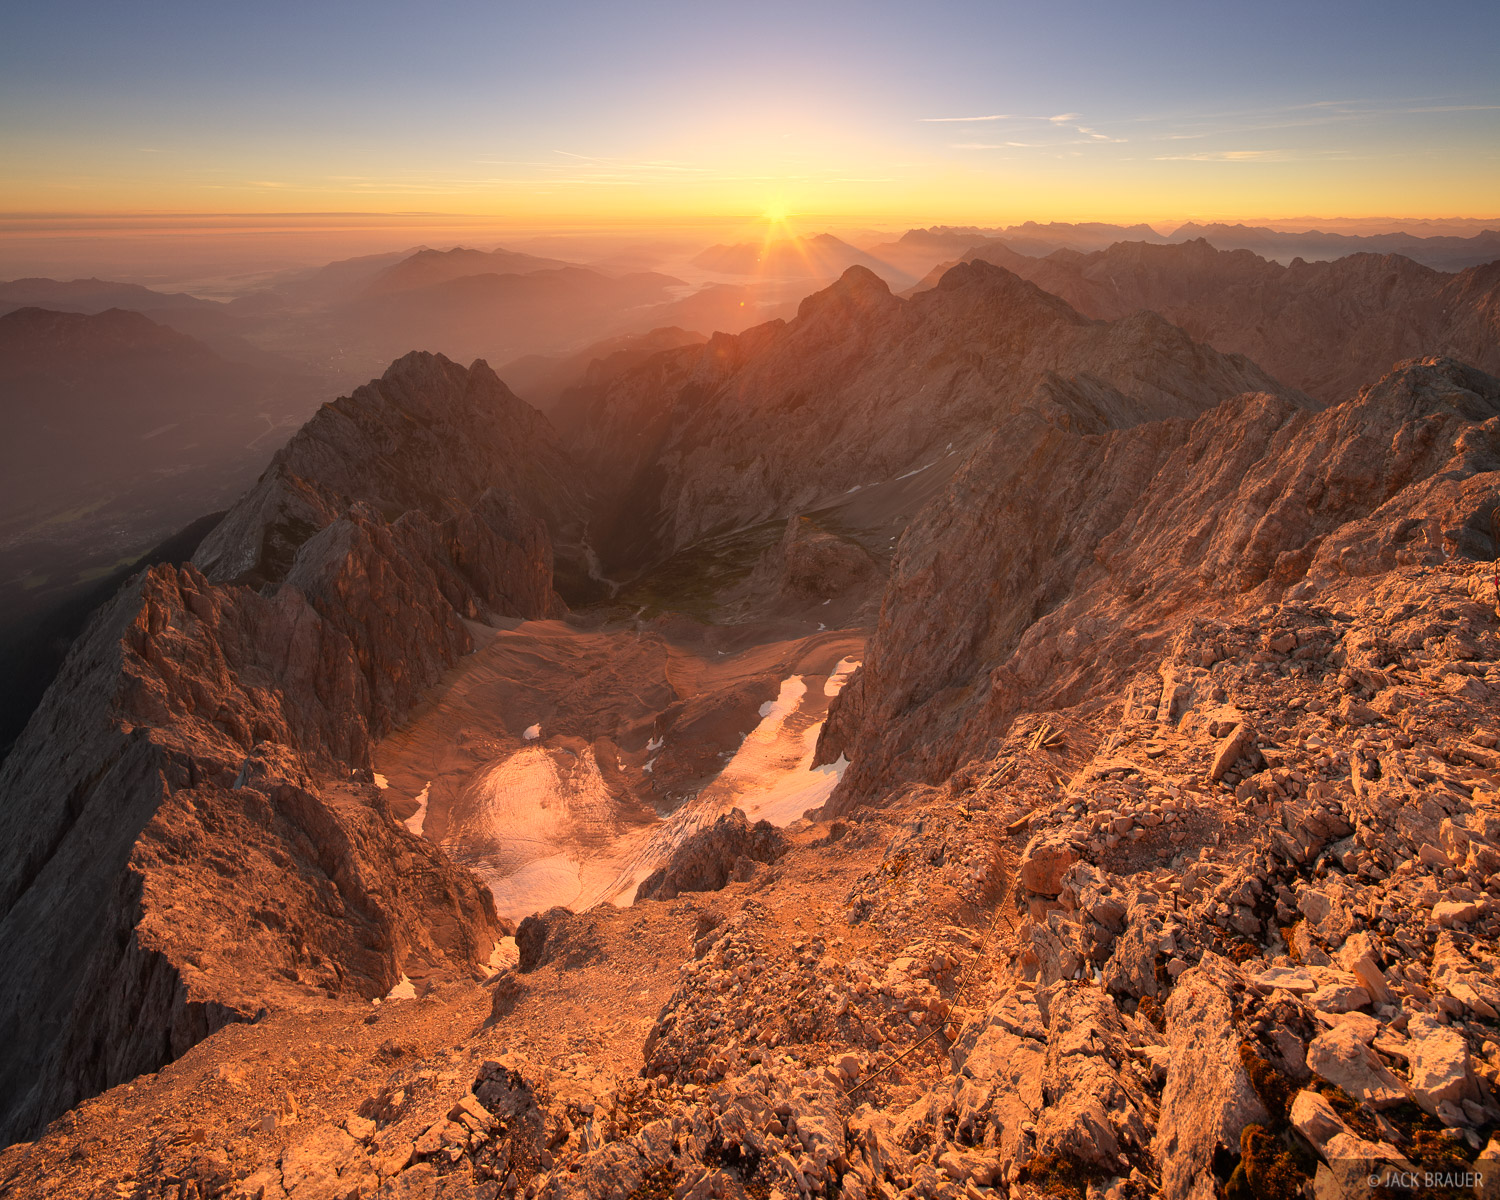 Zugspitze, Wettersteingebirge, Germany, sunrise, summit, photo